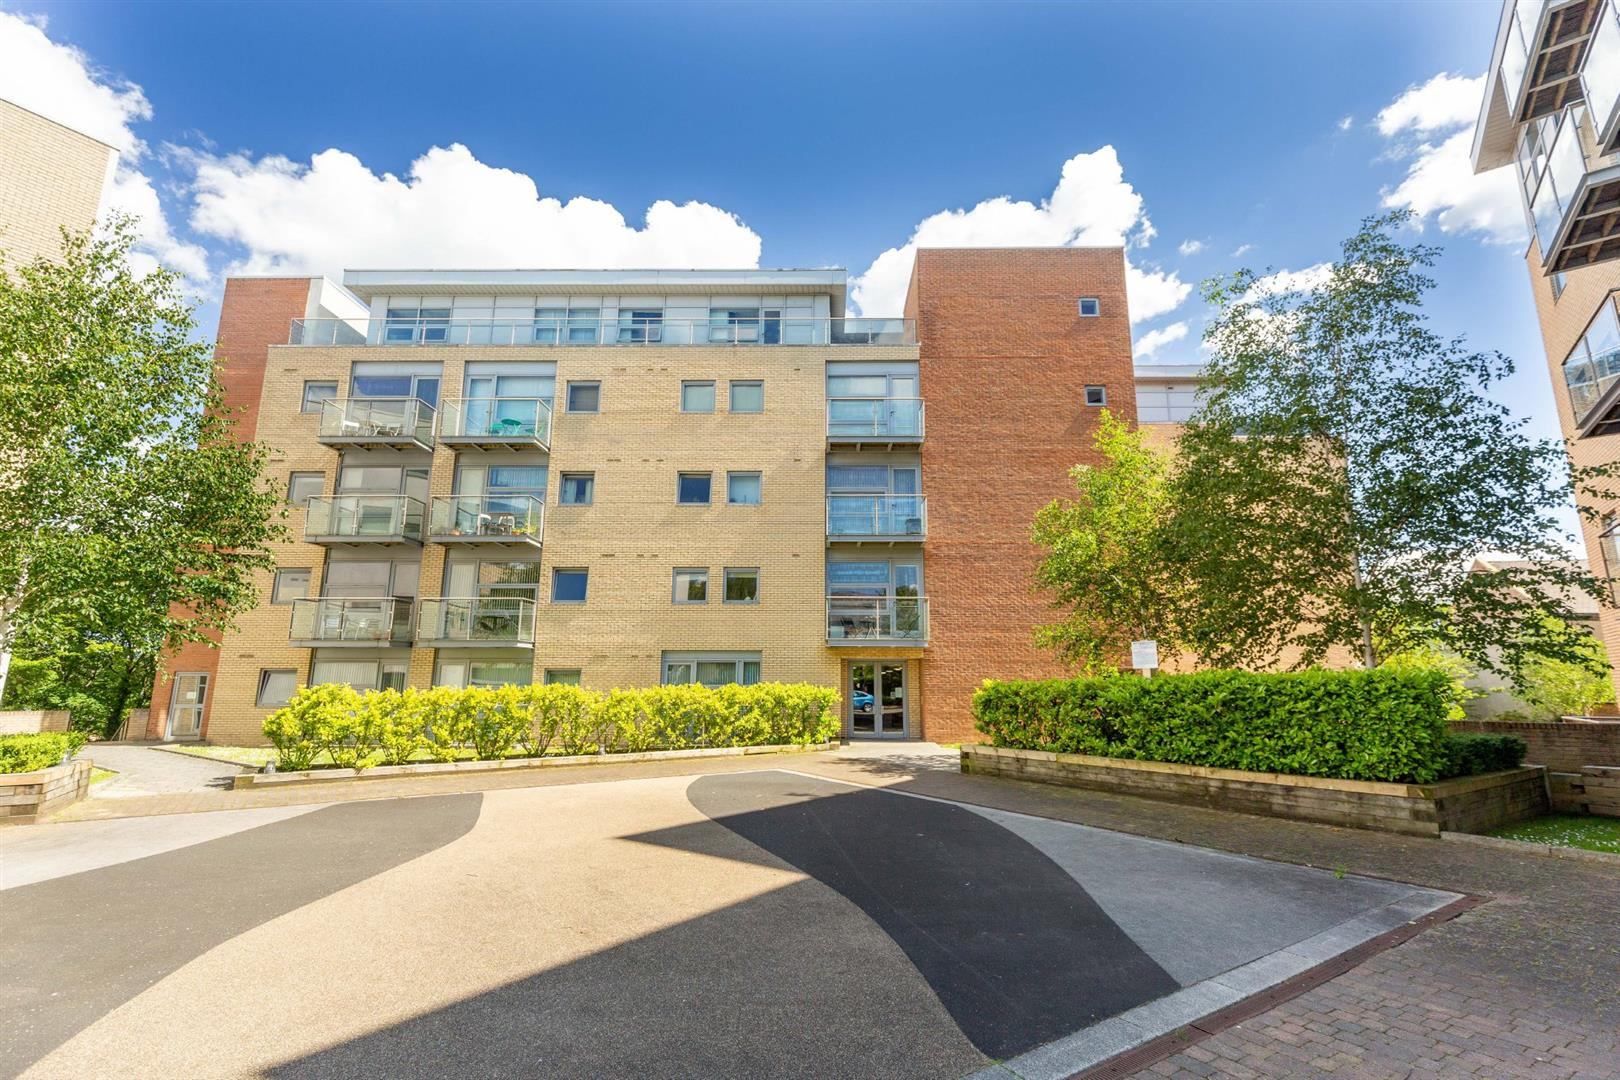 2 bed apartment to rent in Newcastle Upon Tyne, NE1 2BN - Property Image 1